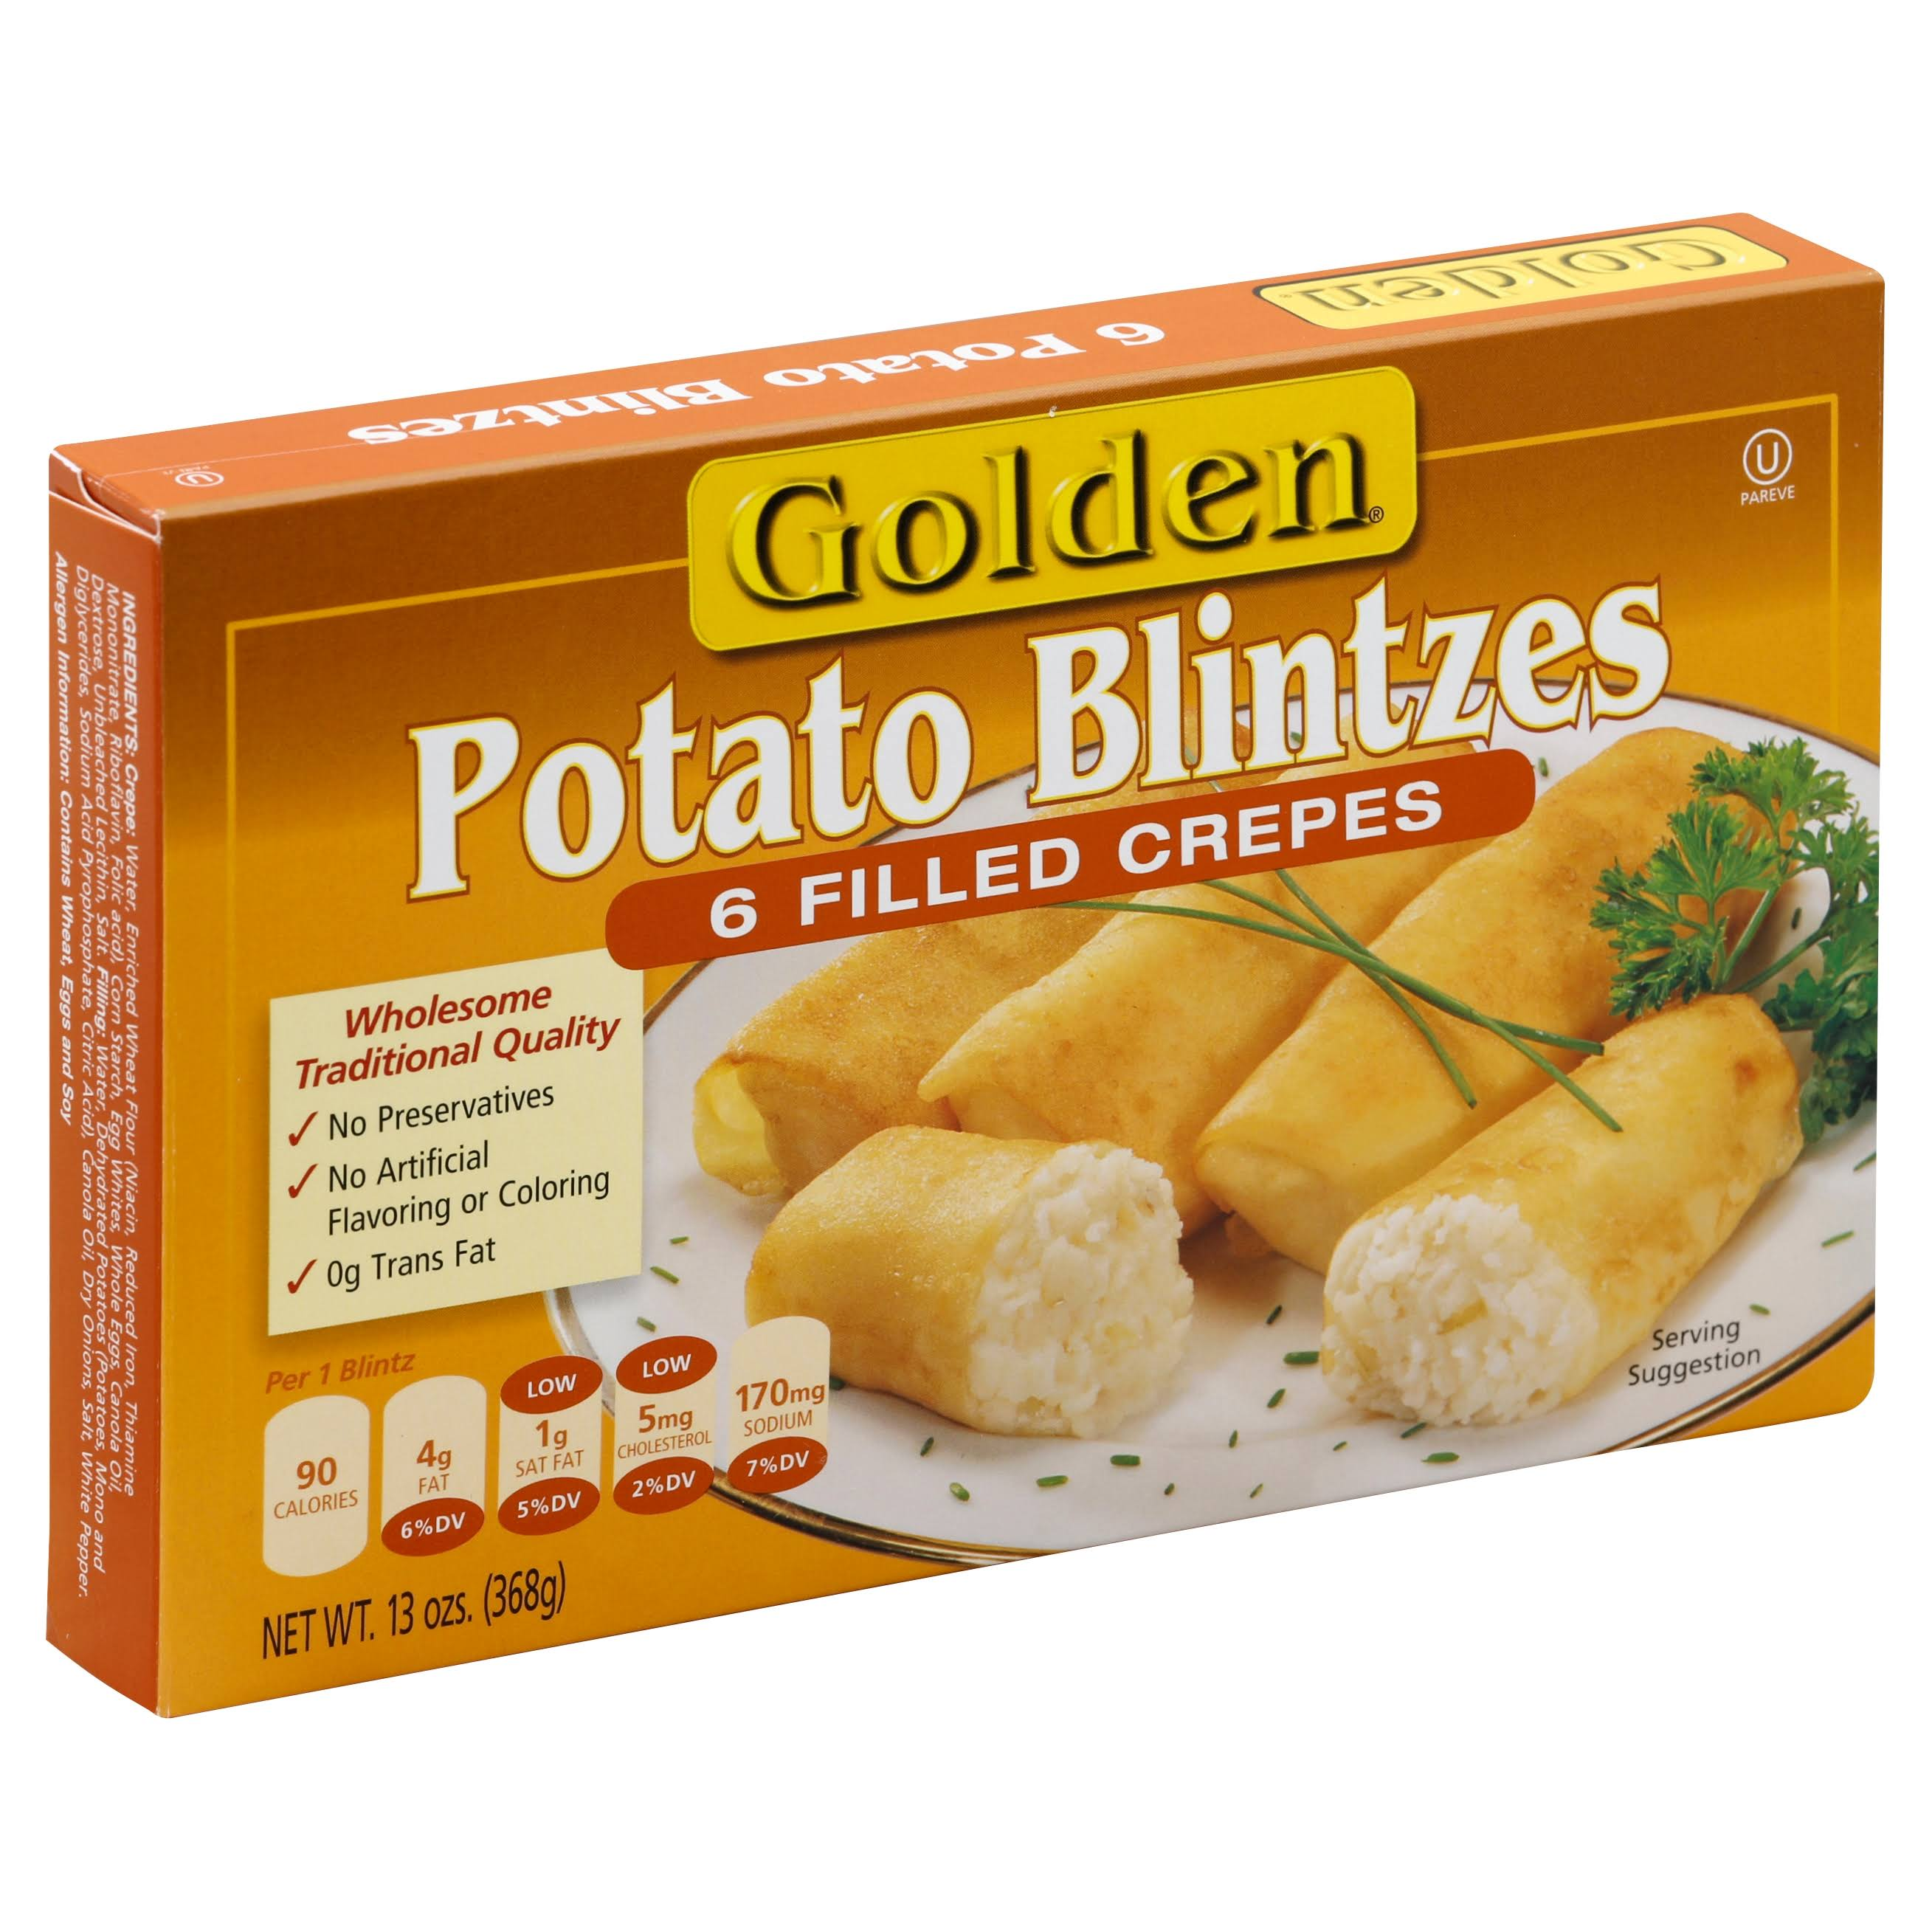 Golden Potato Blintzes Filled Crepes - 6ct, 13oz